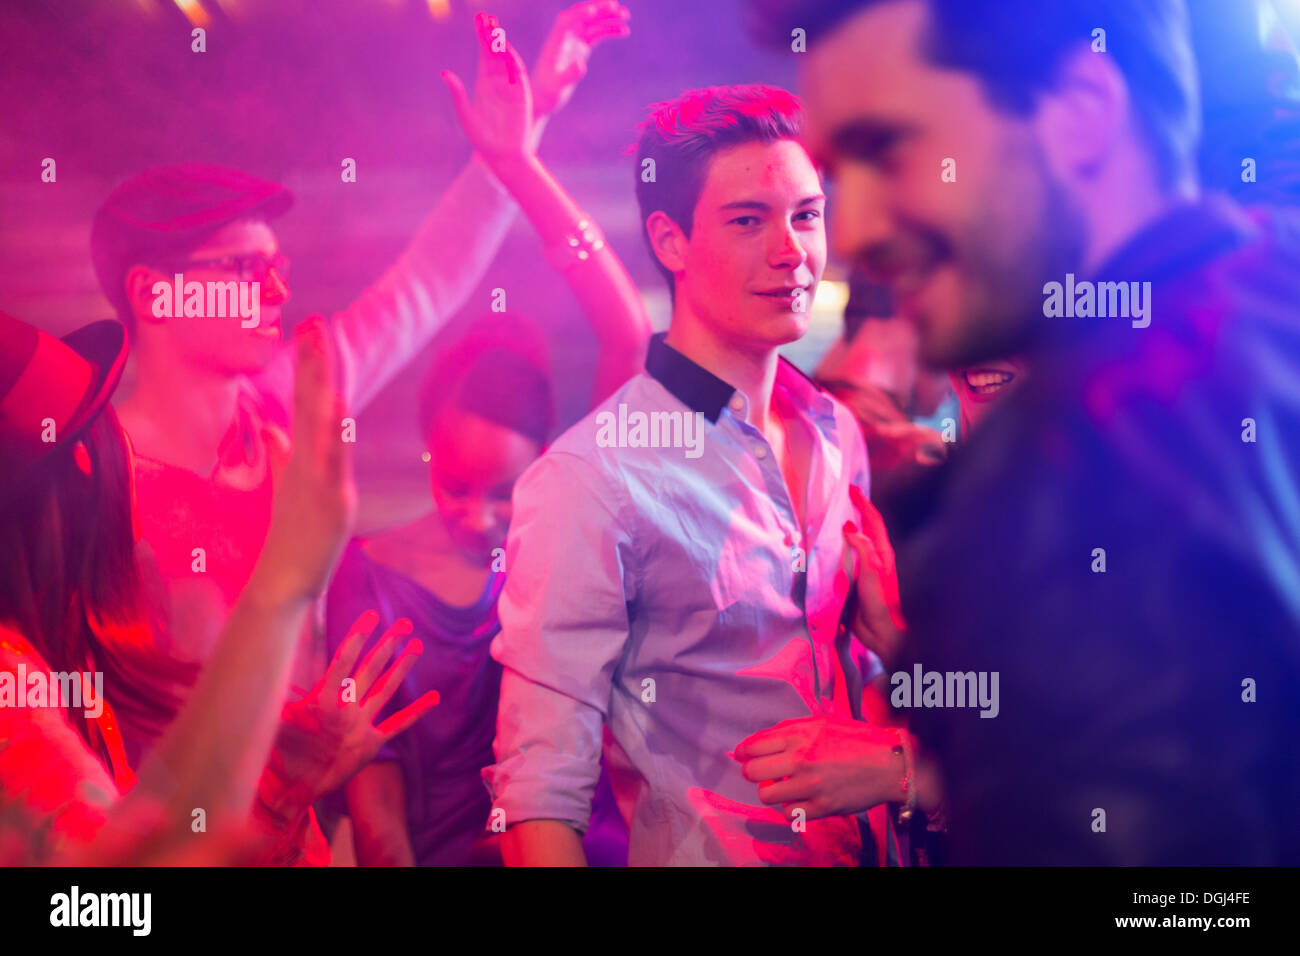 Teenage boy surrounded by group of people dancing at party - Stock Image